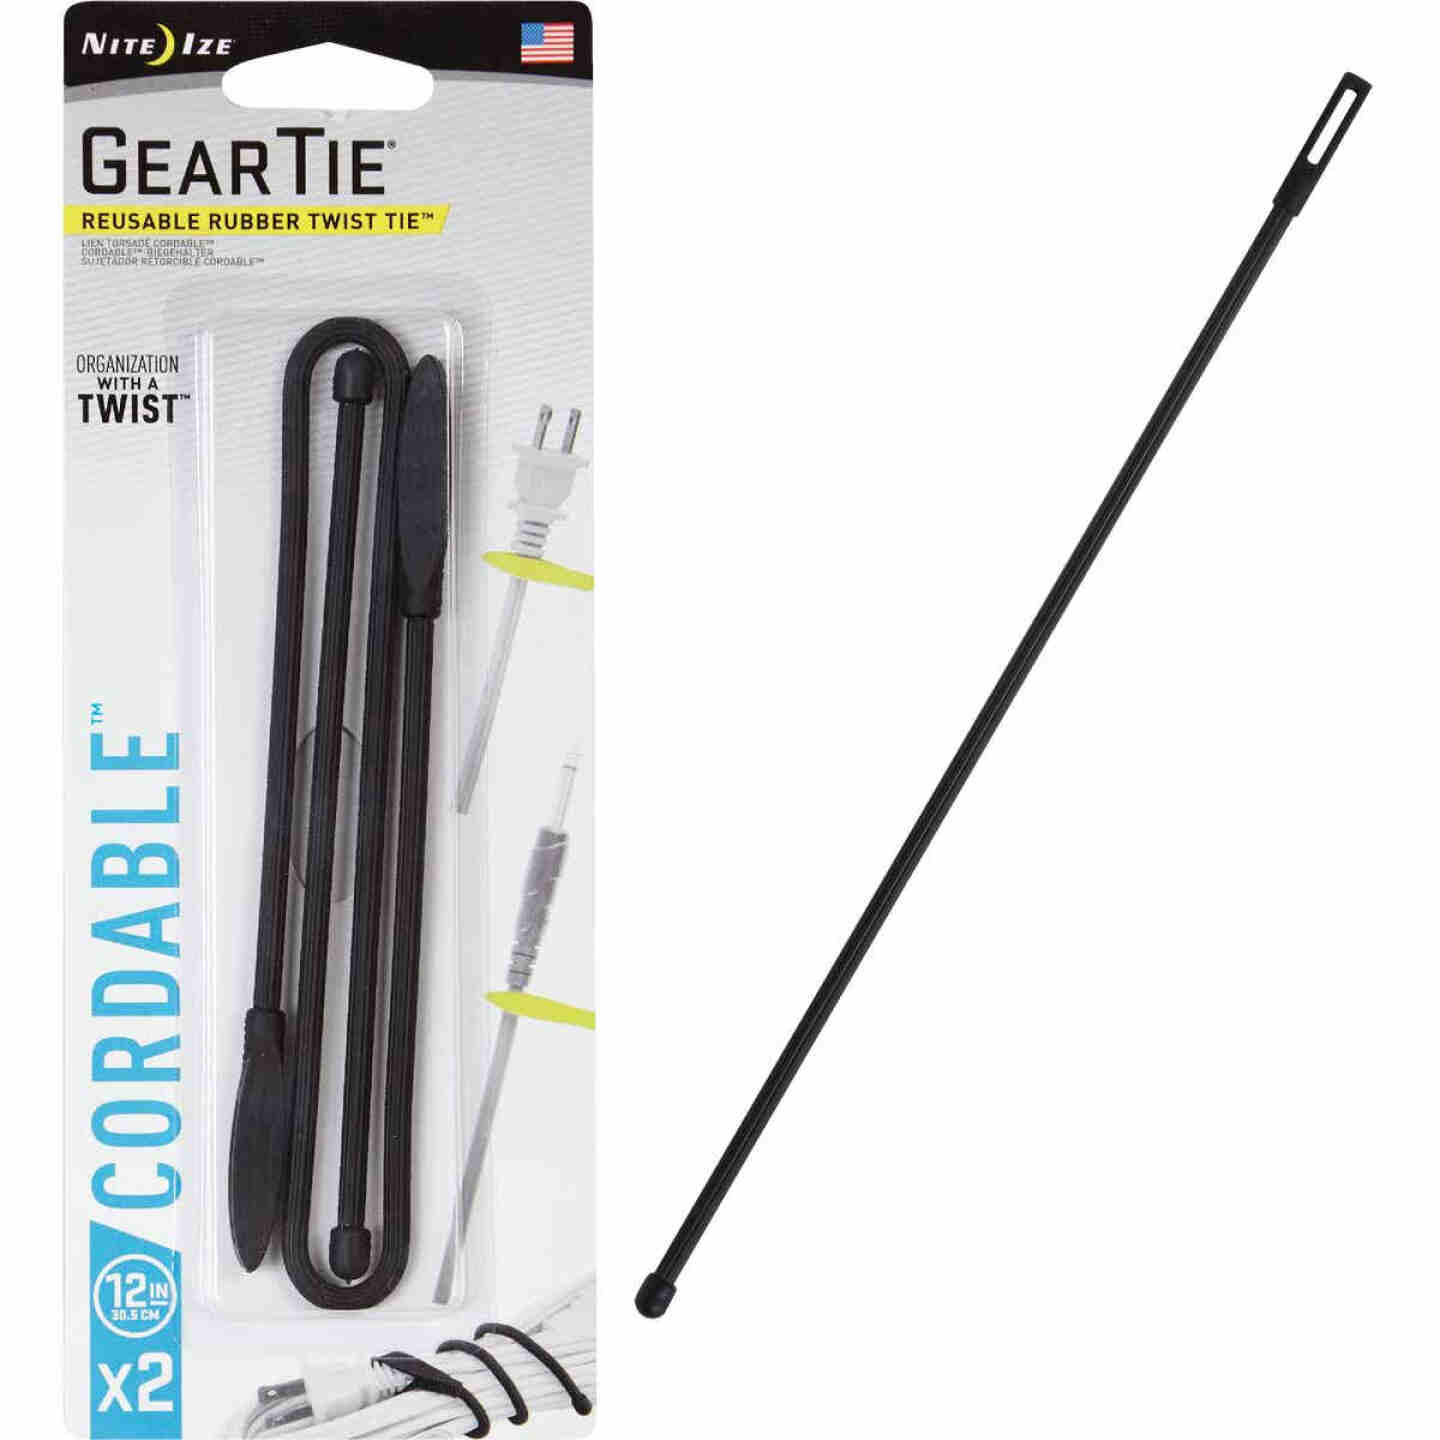 GearTie Cordable 12 In. Black Rubber Twist Tie (2-Pack) Image 1